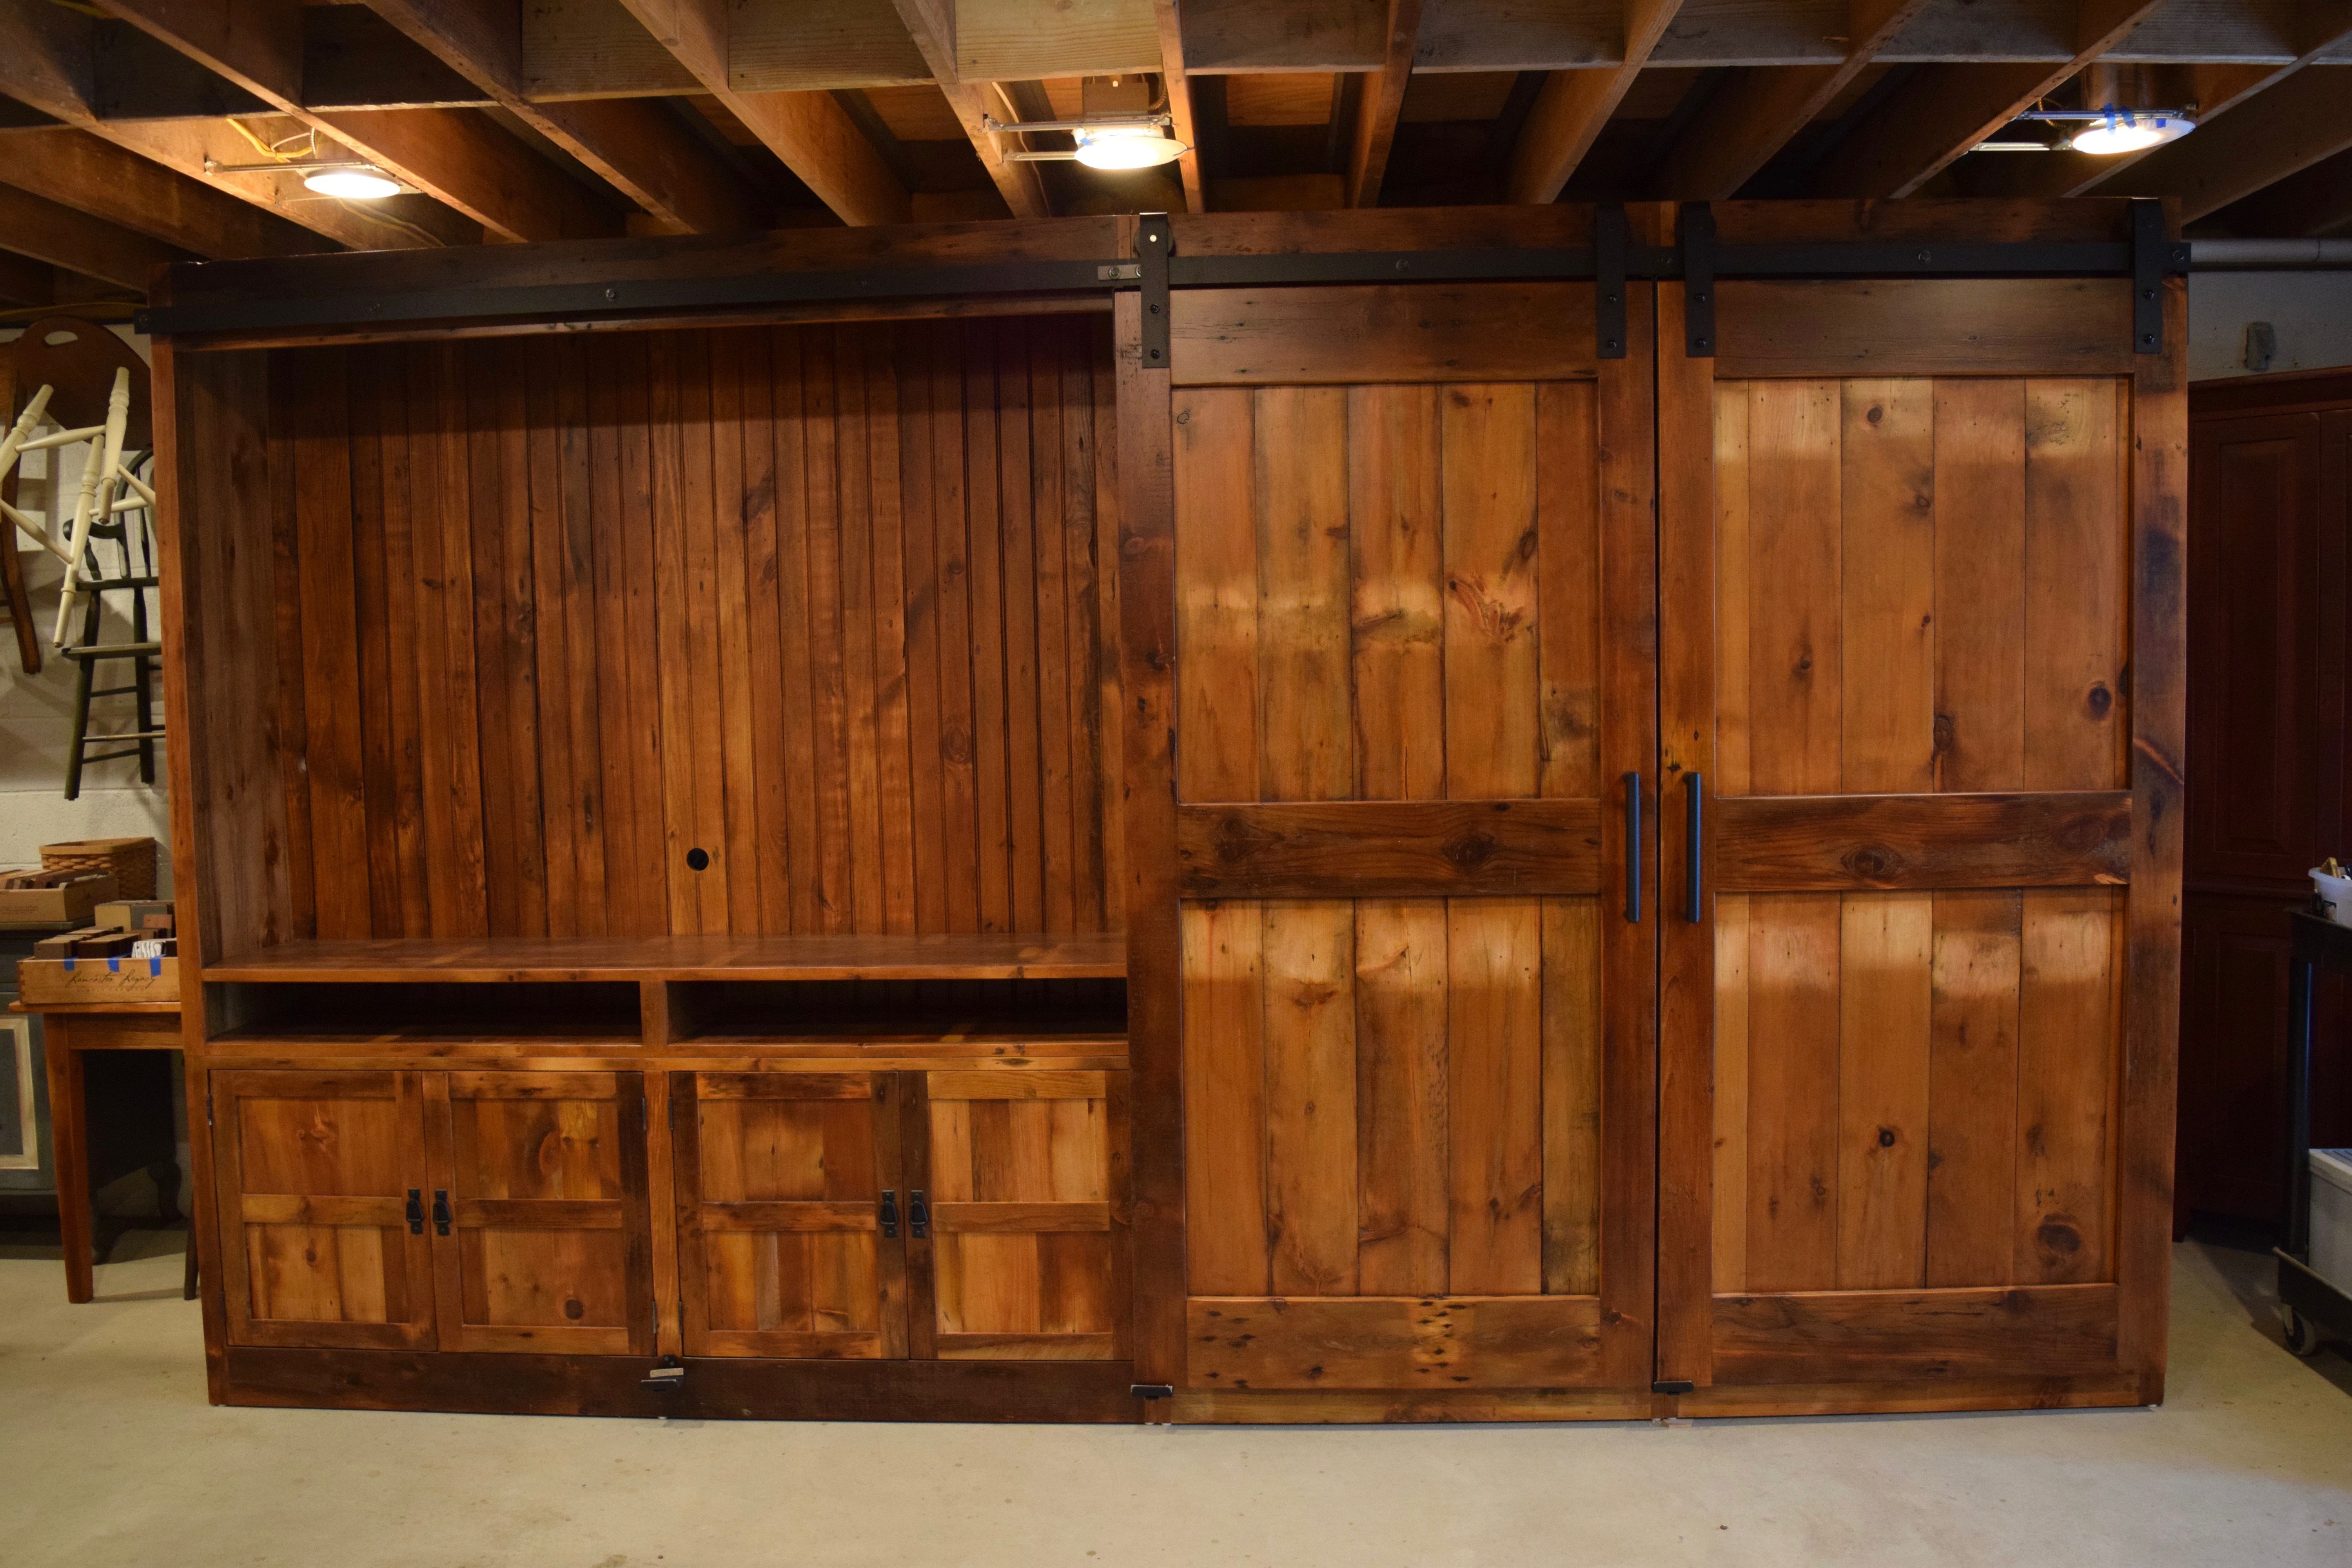 doors lighting barnwood for also door white one of size backsplash sliding tile old made pantry concrete barn cabinet red wall wood black with amazing full countertops led cabinets out lamp kitchen and you great in ceramic